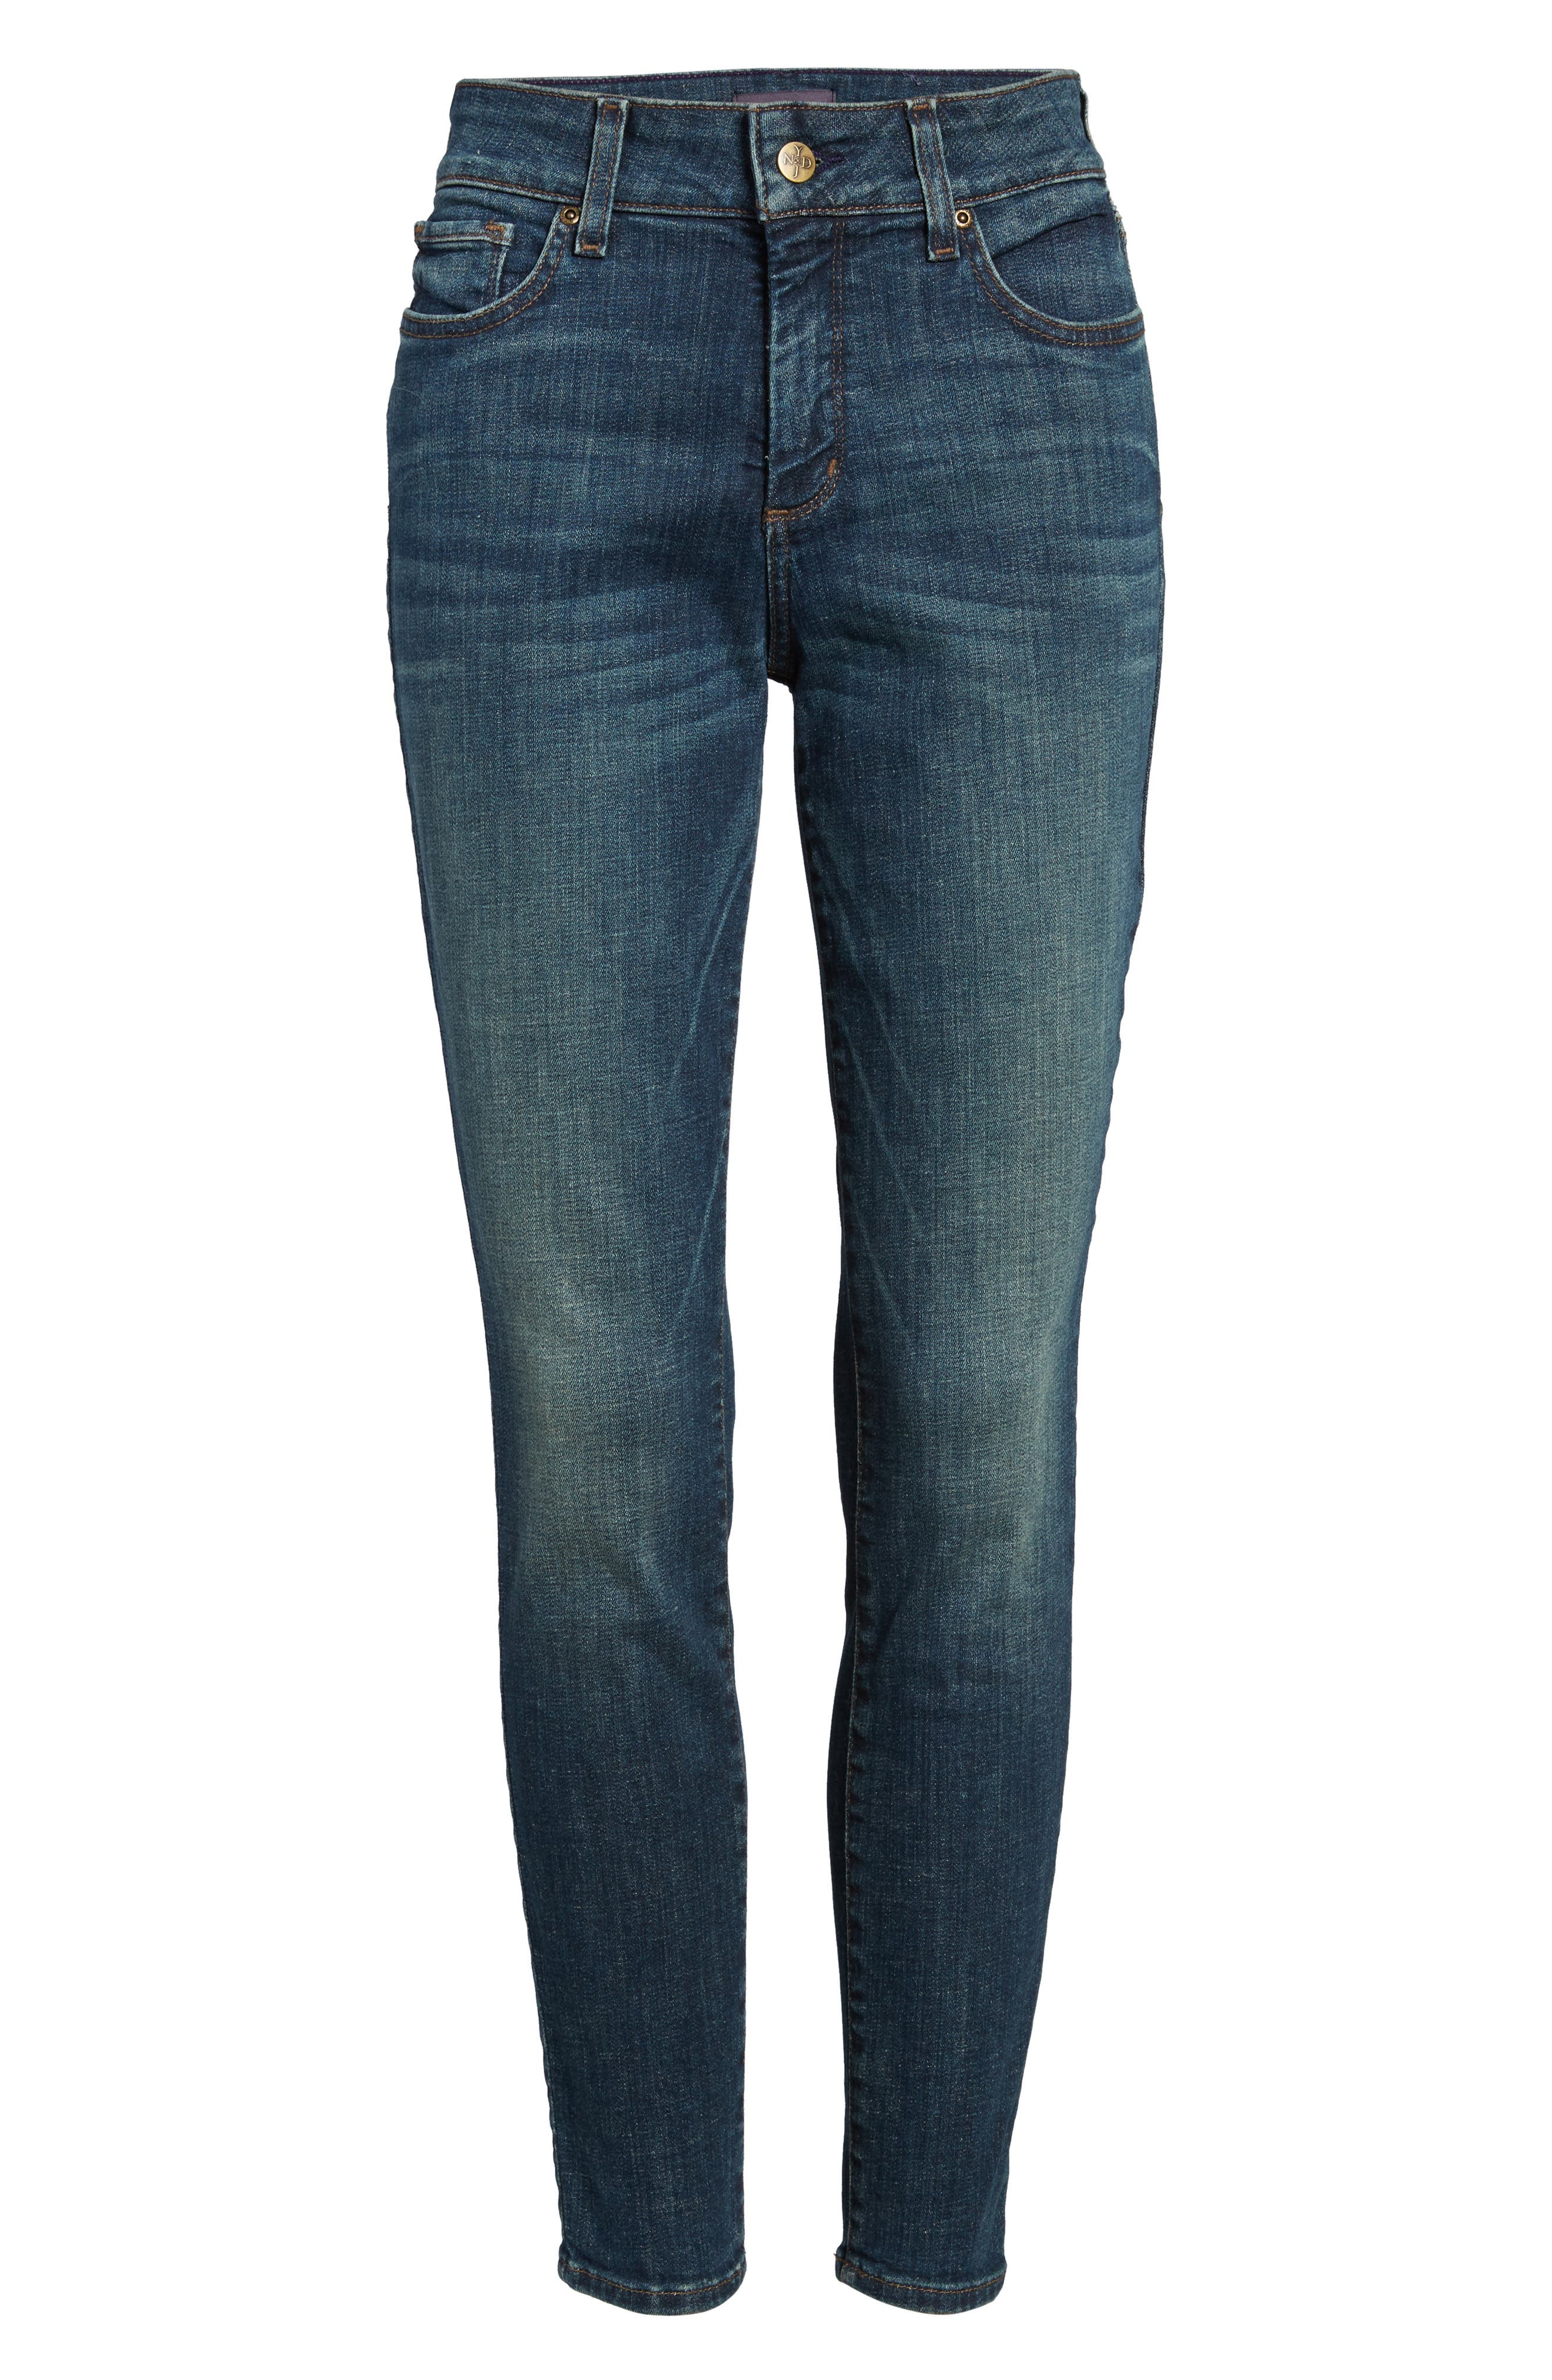 Ami Stretch Skinny Jeans,                             Alternate thumbnail 6, color,                             420